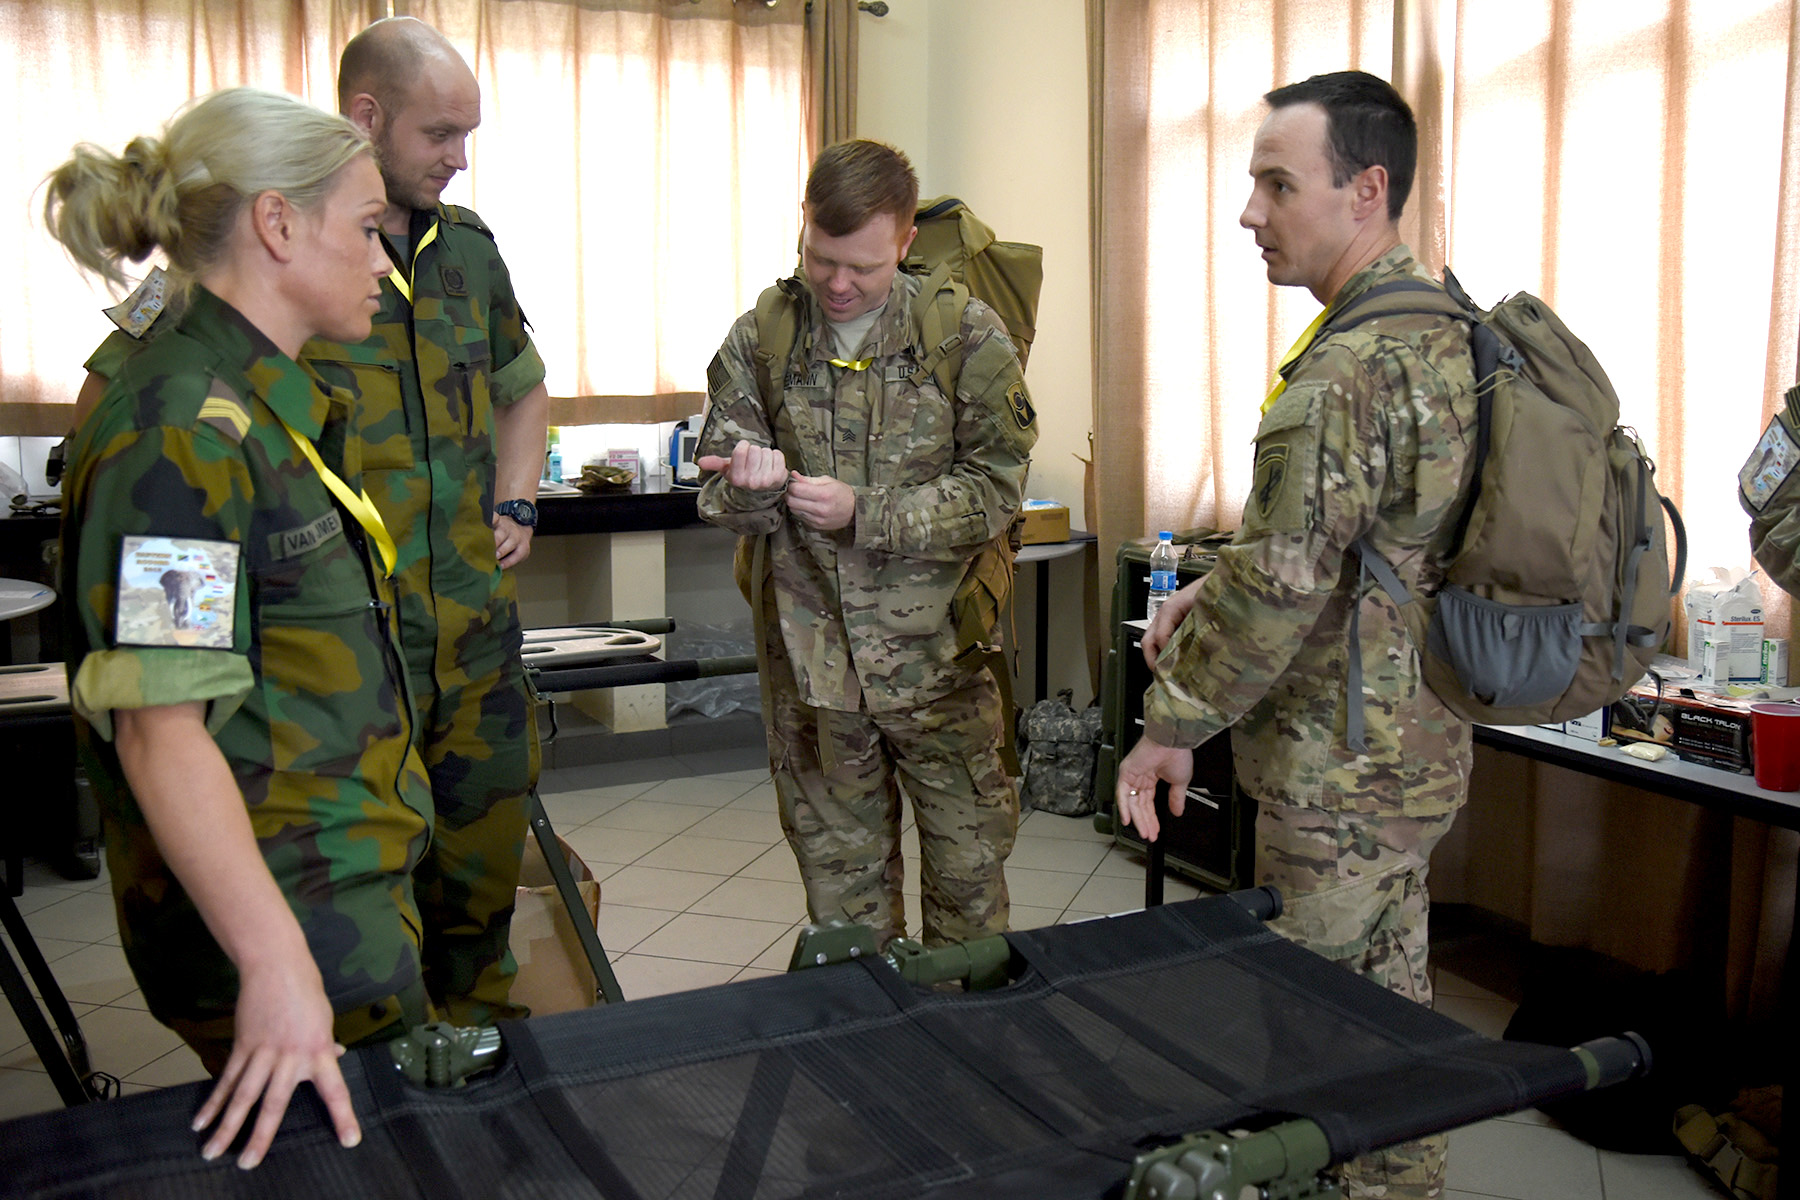 DAR ES SALAAM, Tanzania – Dutch and U.S. Eastern Accord medical personnel prepare for a tactical casualty care exercise at the Tanzanian Peacekeeping Training Centre, July 15, 2016, in Dar es Salaam, Tanzania. The medical team supports approximately 200 personnel for the annual, combined, joint military exercise that brings together nine partner nations to practice and demonstrate proficiency in conducting peacekeeping operations. (U.S. Air Force photo by Staff Sgt. Tiffany DeNault)